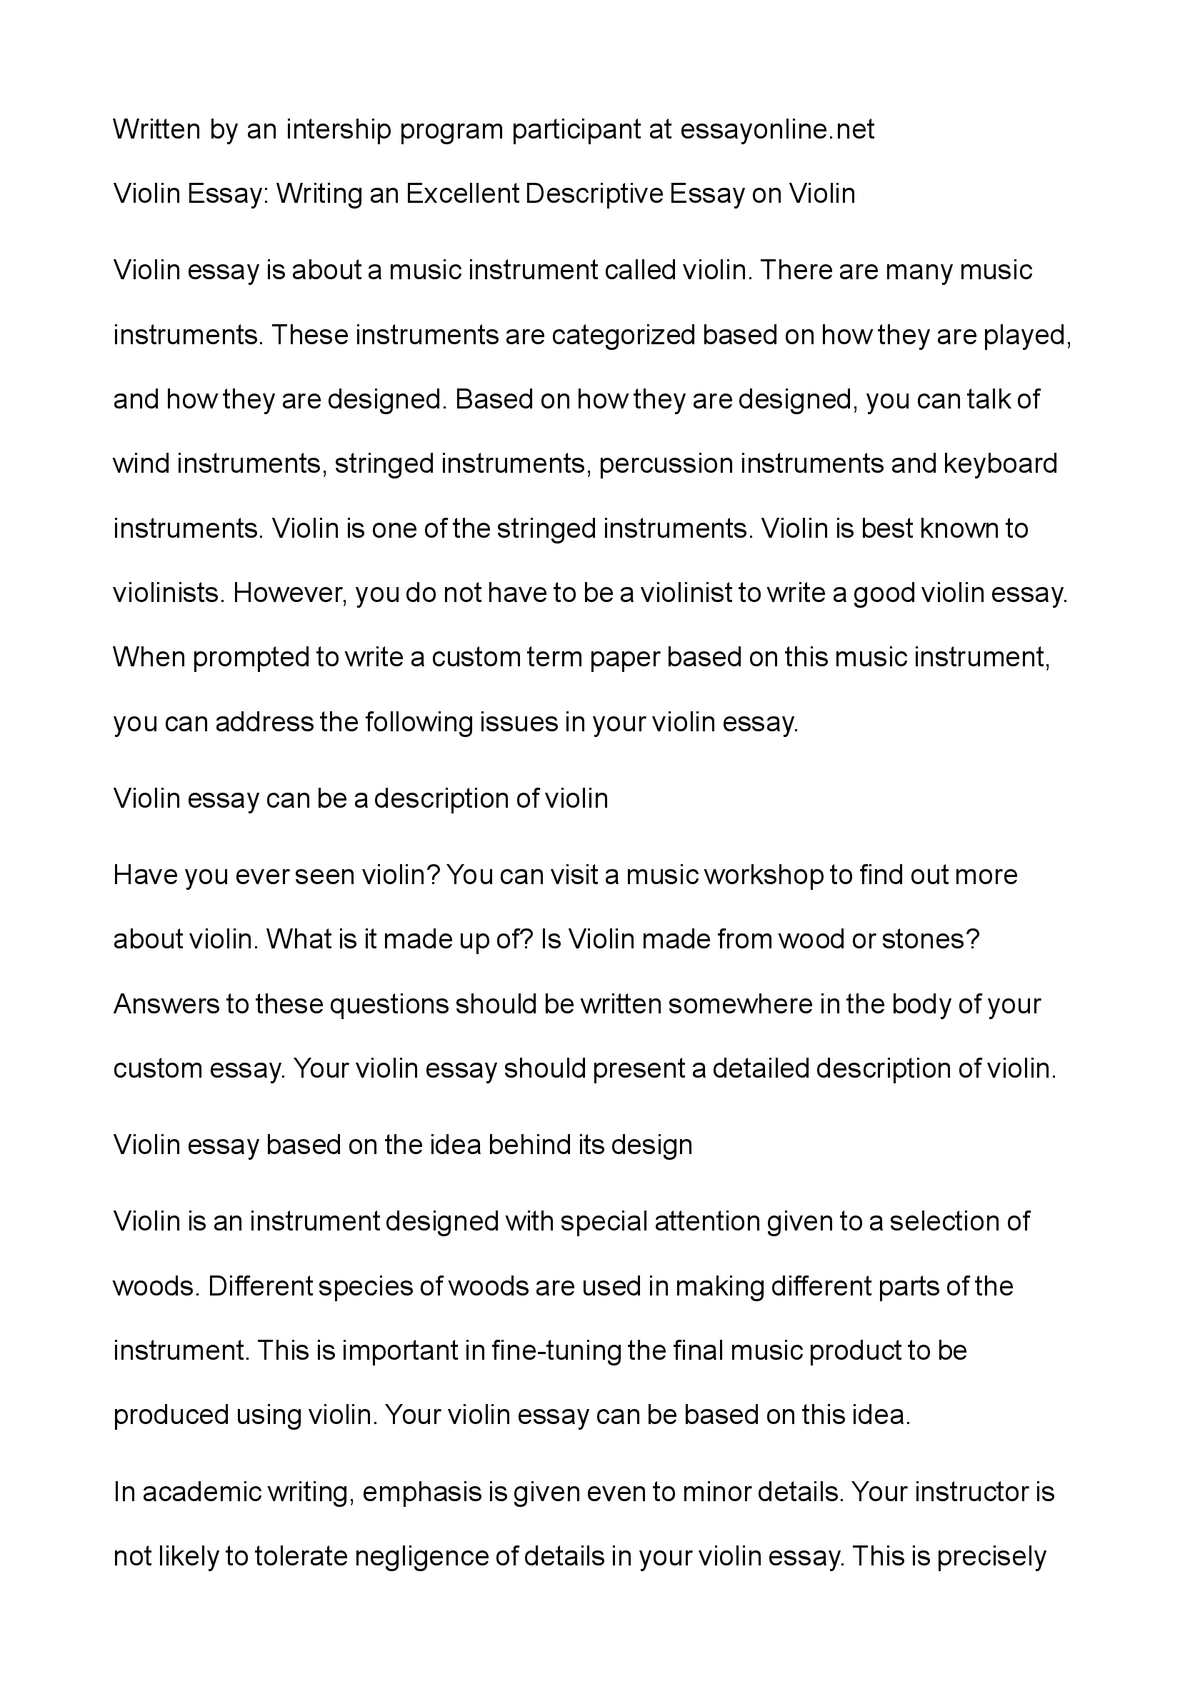 calam eacute o violin essay writing an excellent descriptive essay on calameacuteo violin essay writing an excellent descriptive essay on violin